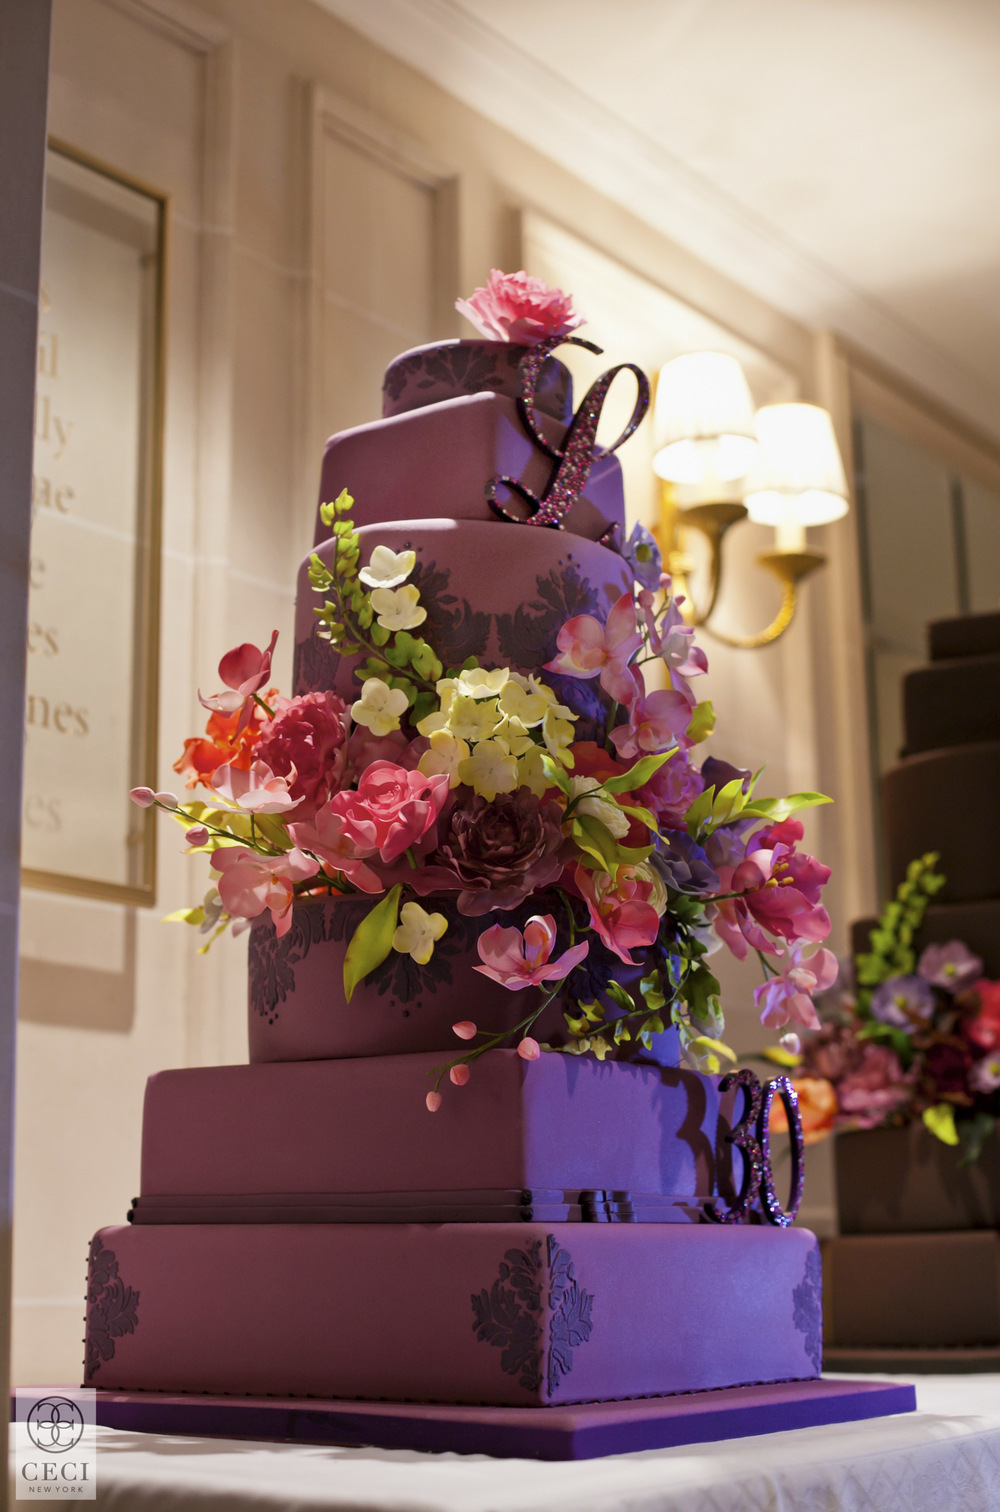 ceci_new_york_lucas_somoza_purple_regal_wediding_birthday_commitment_ceremony_gold-33.jpg